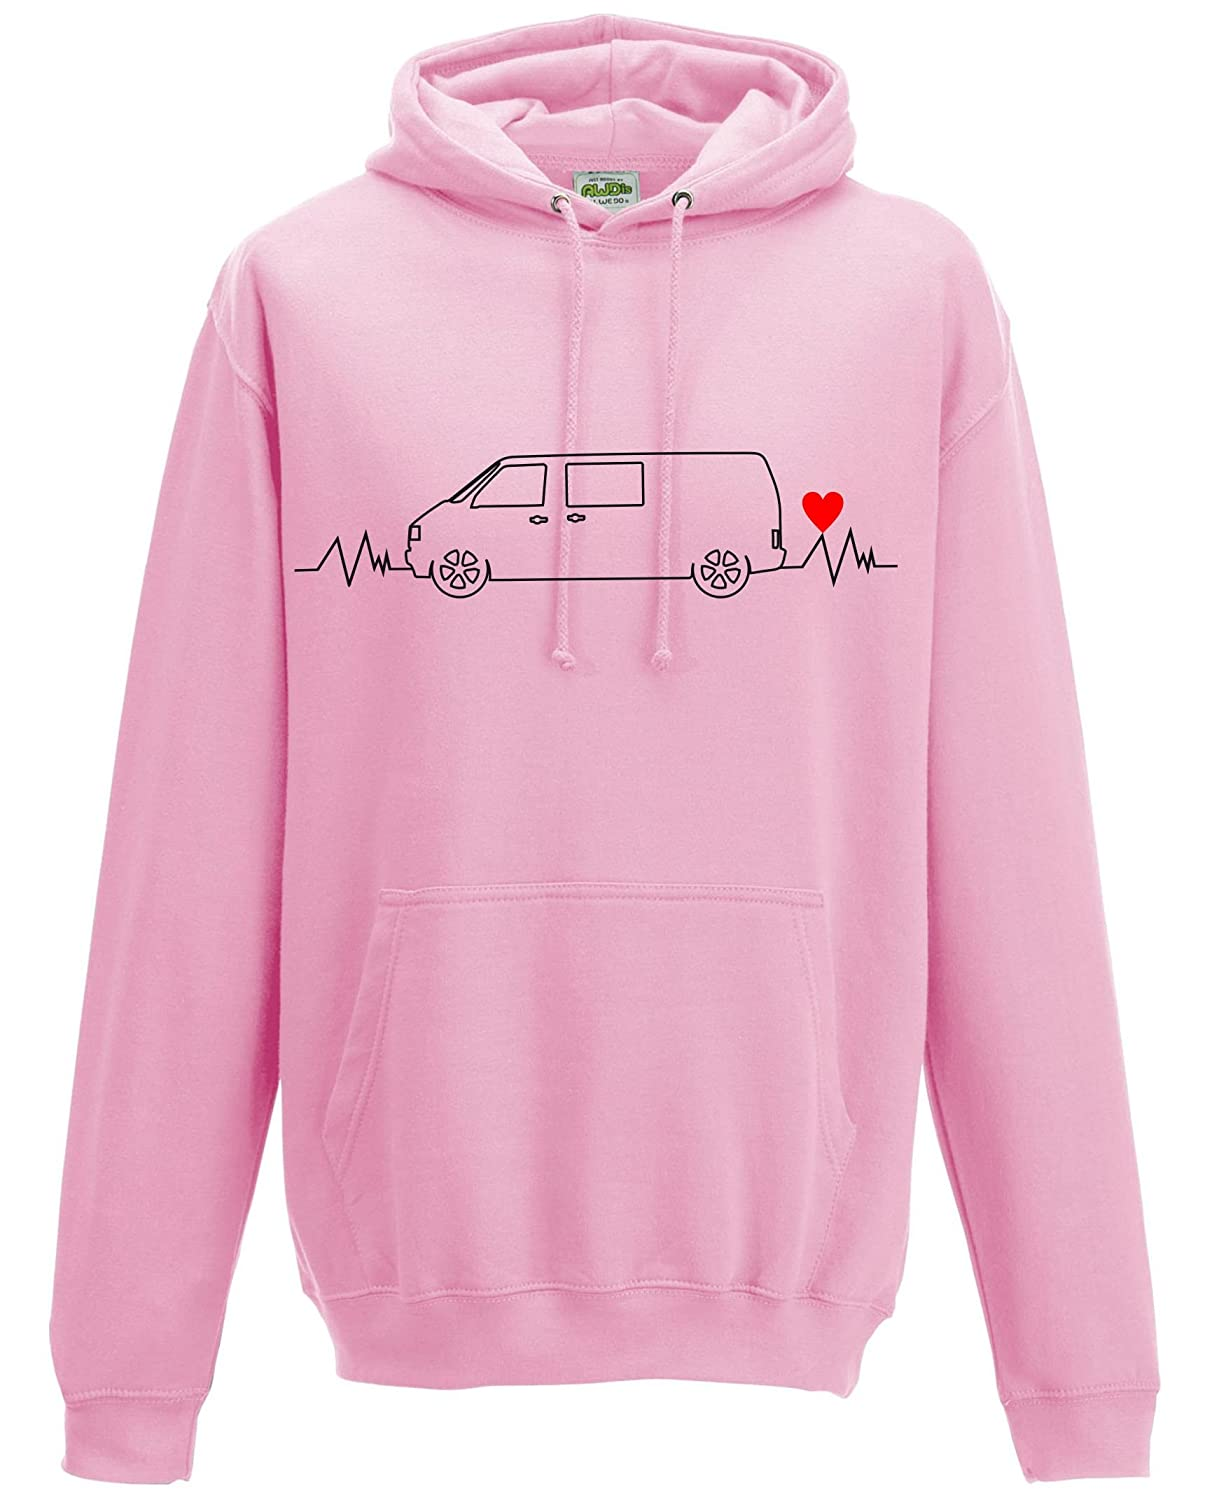 EVOLUTION OF MOTORHOME JUMPER MOTORHOME SWEATER CAMPERVAN SWEATSHIRT S-XXL